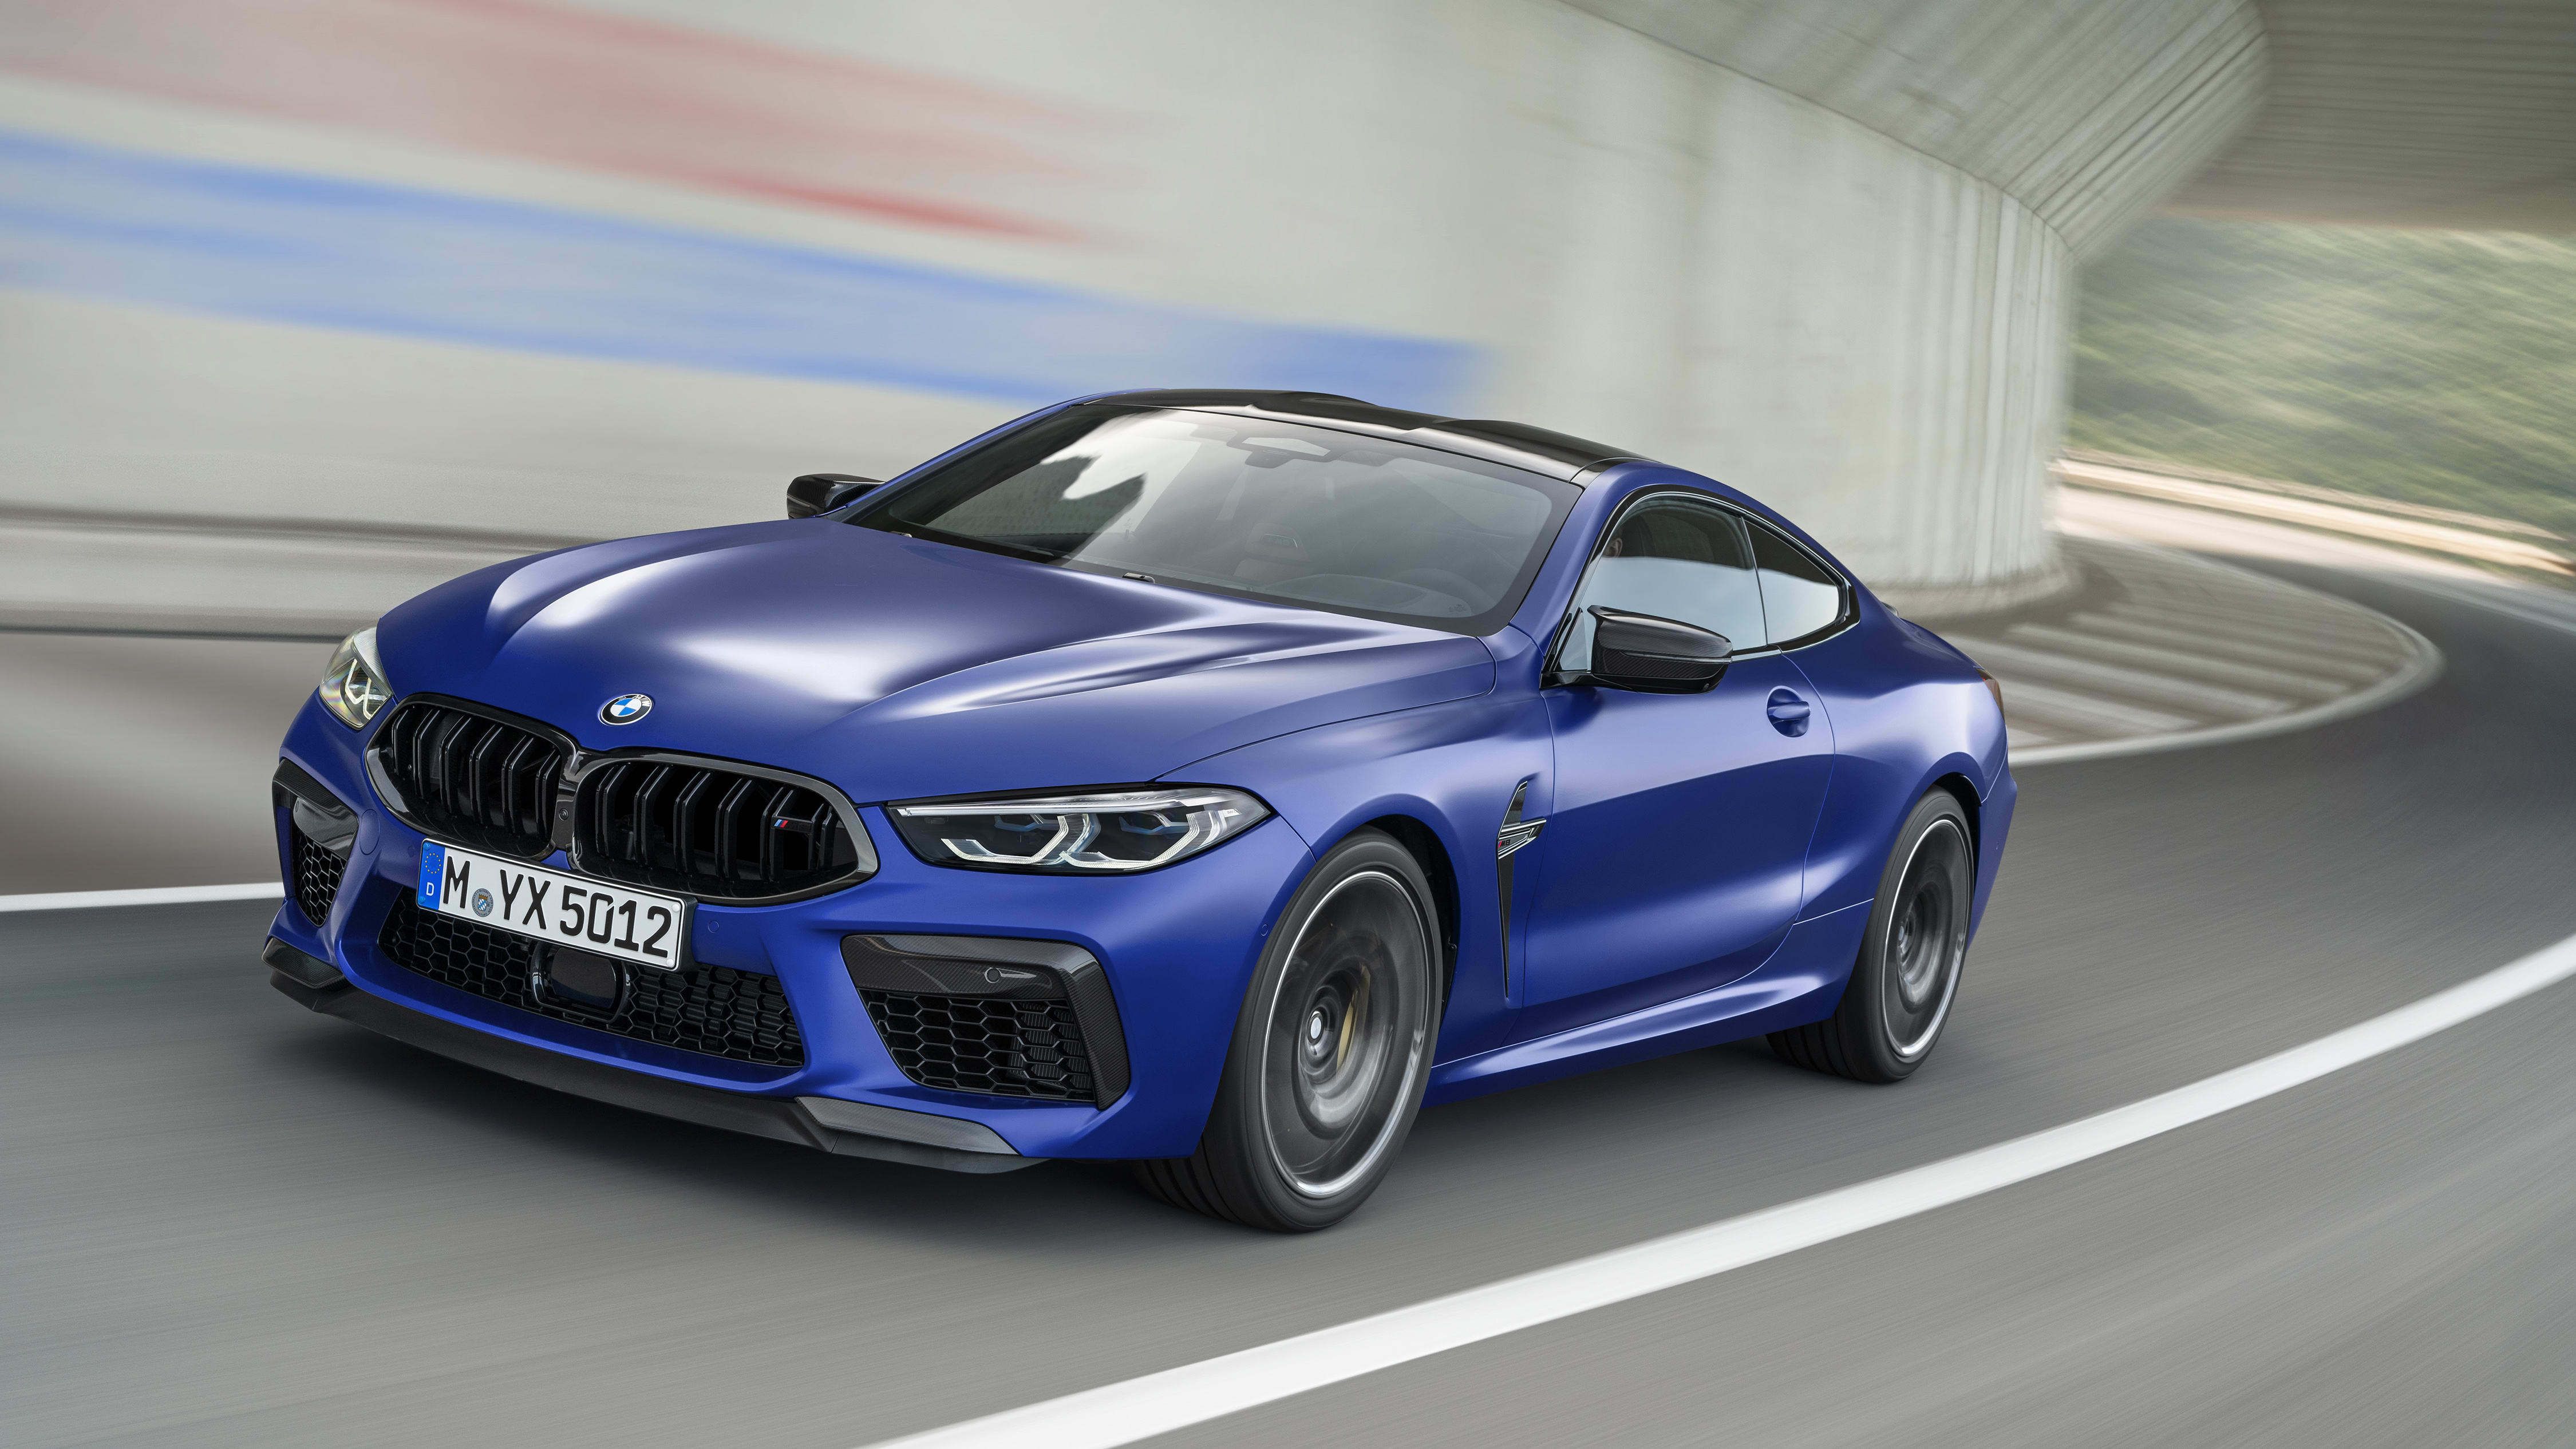 2020 Bmw M8 Competition Pricing And Specs Caradvice